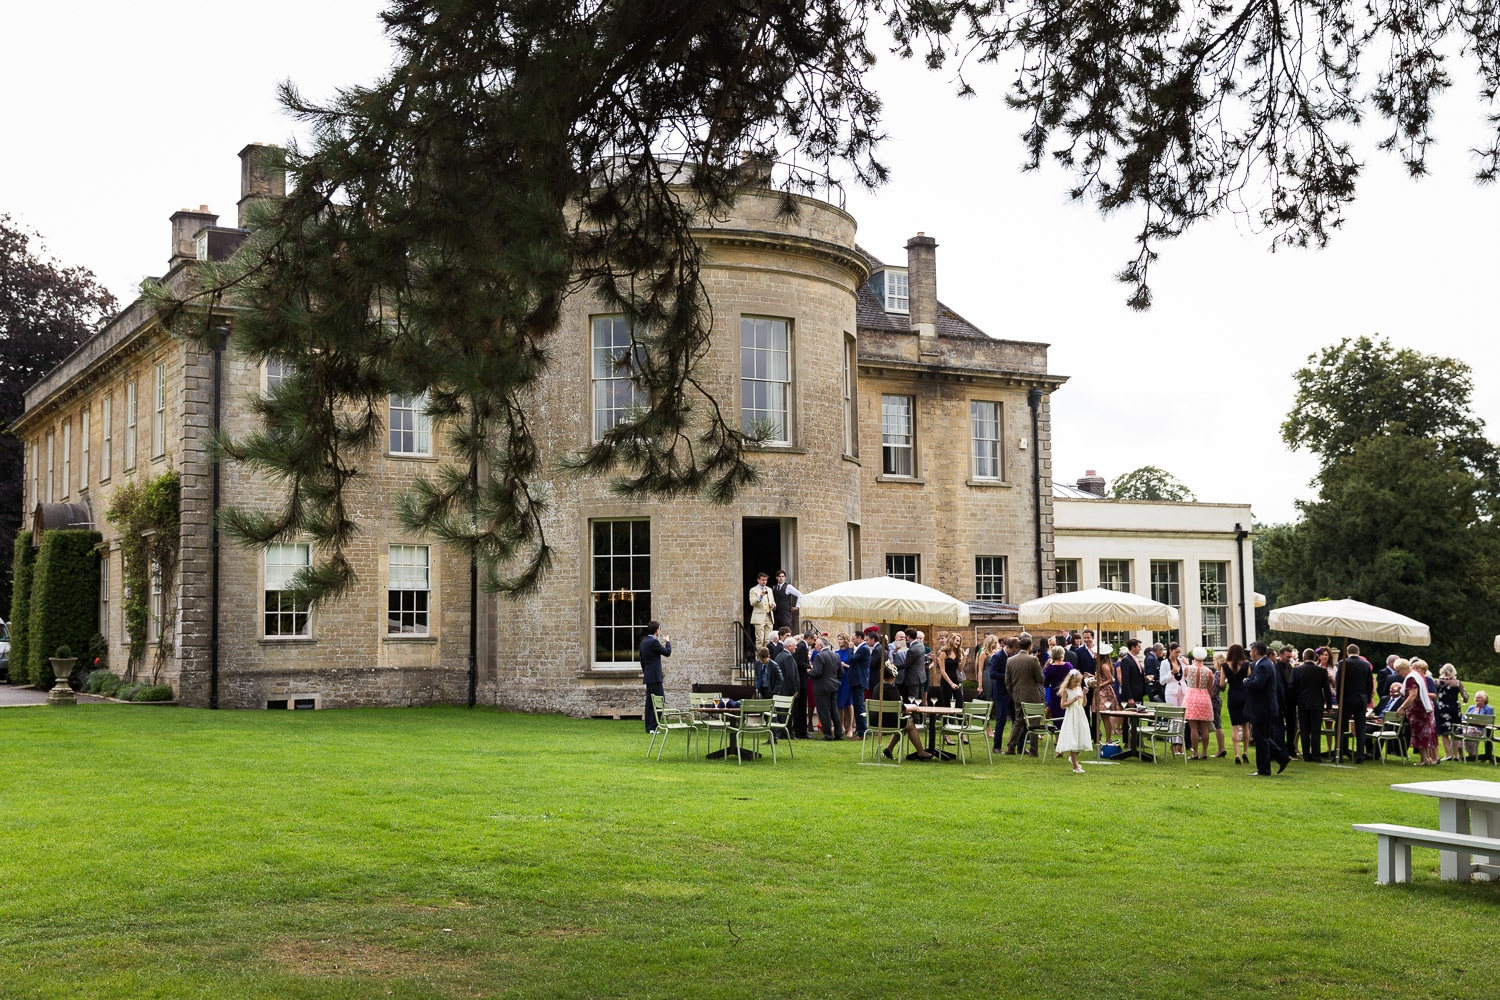 Wedding guests enjoying the outdoor space at babington house